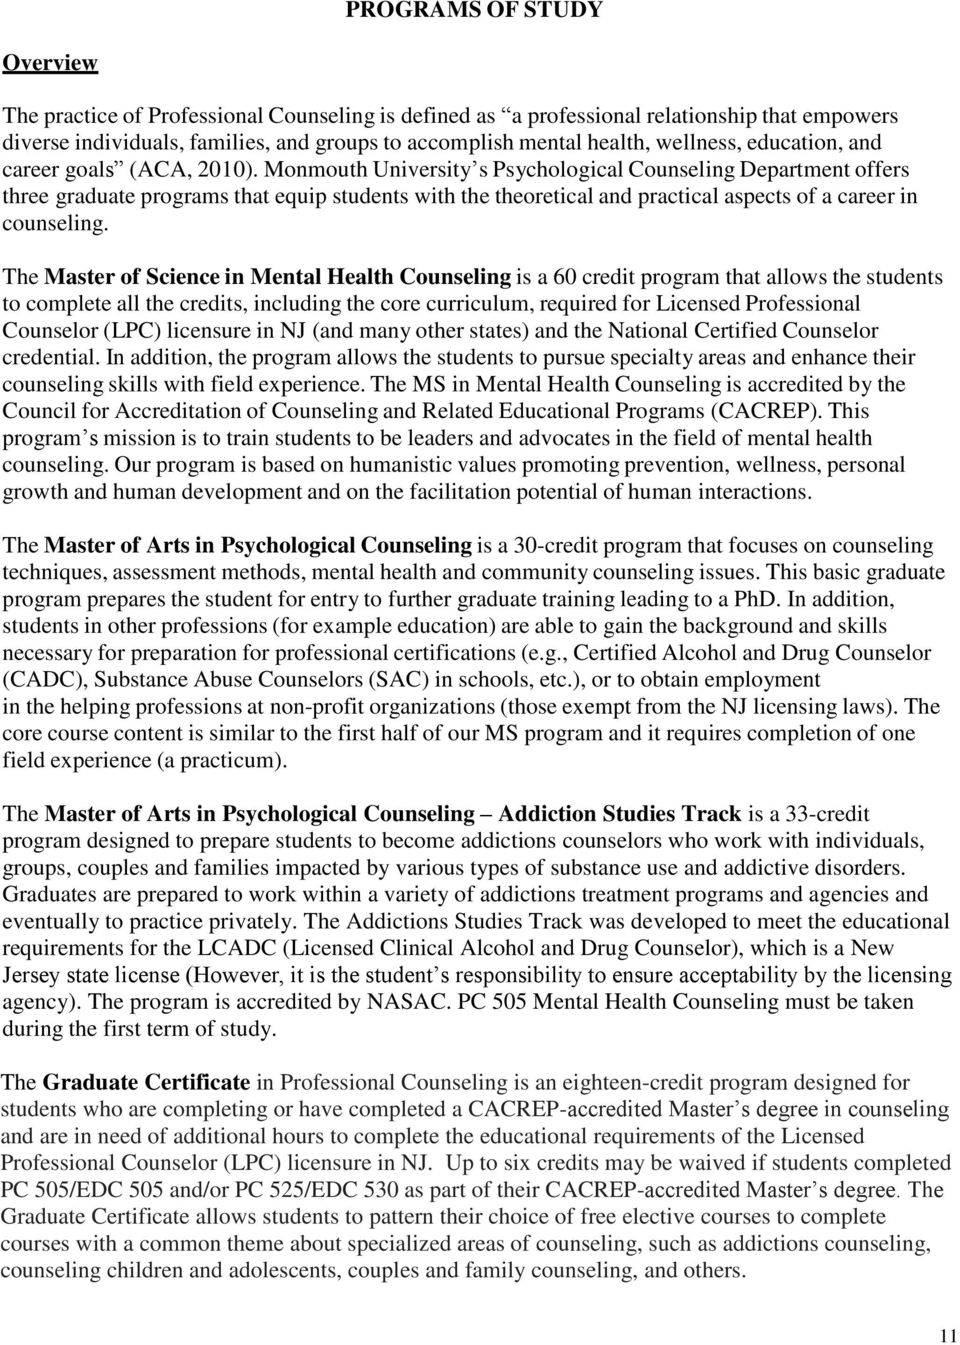 Monmouth University s Psychological Counseling Department offers three graduate programs that equip students with the theoretical and practical aspects of a career in counseling.